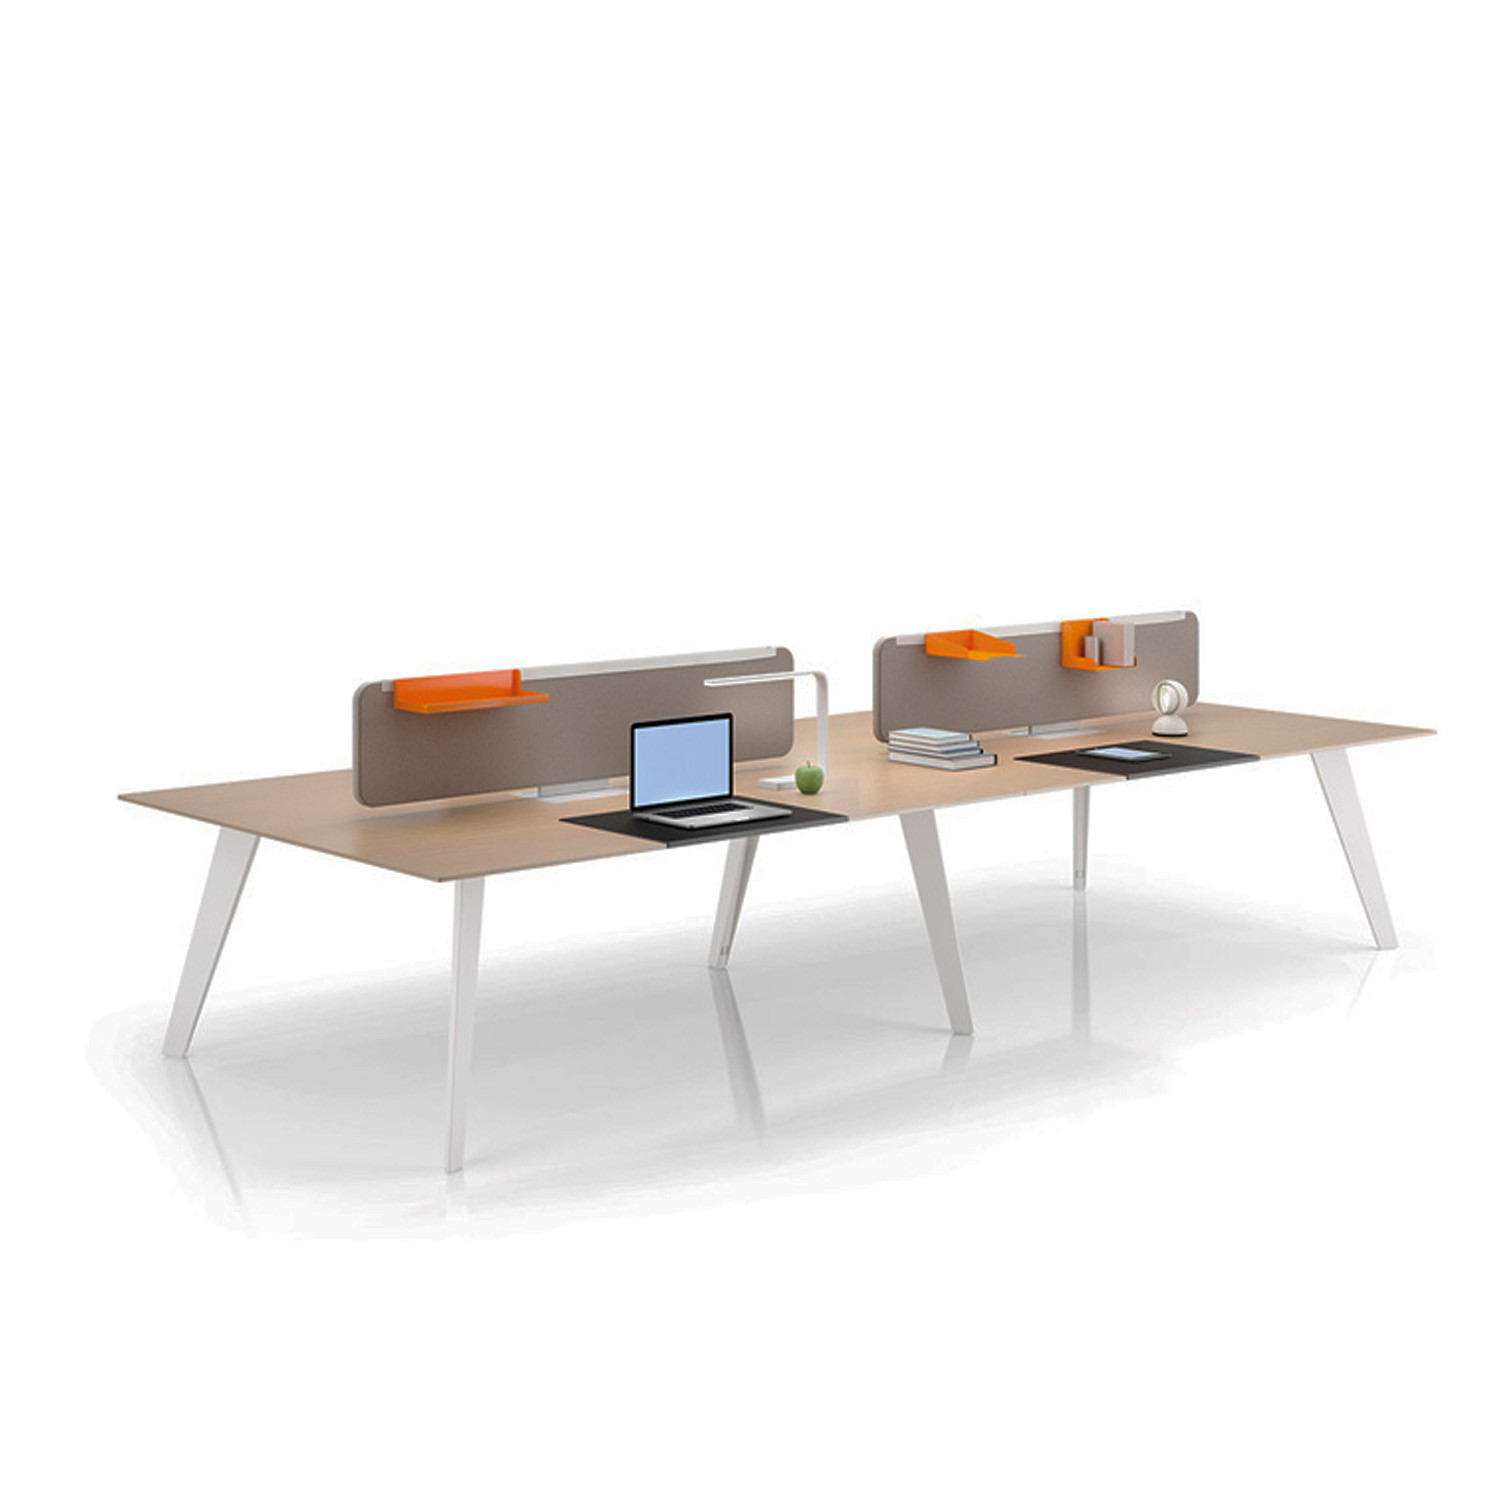 Vee Bench Desk by Norbert Geelen